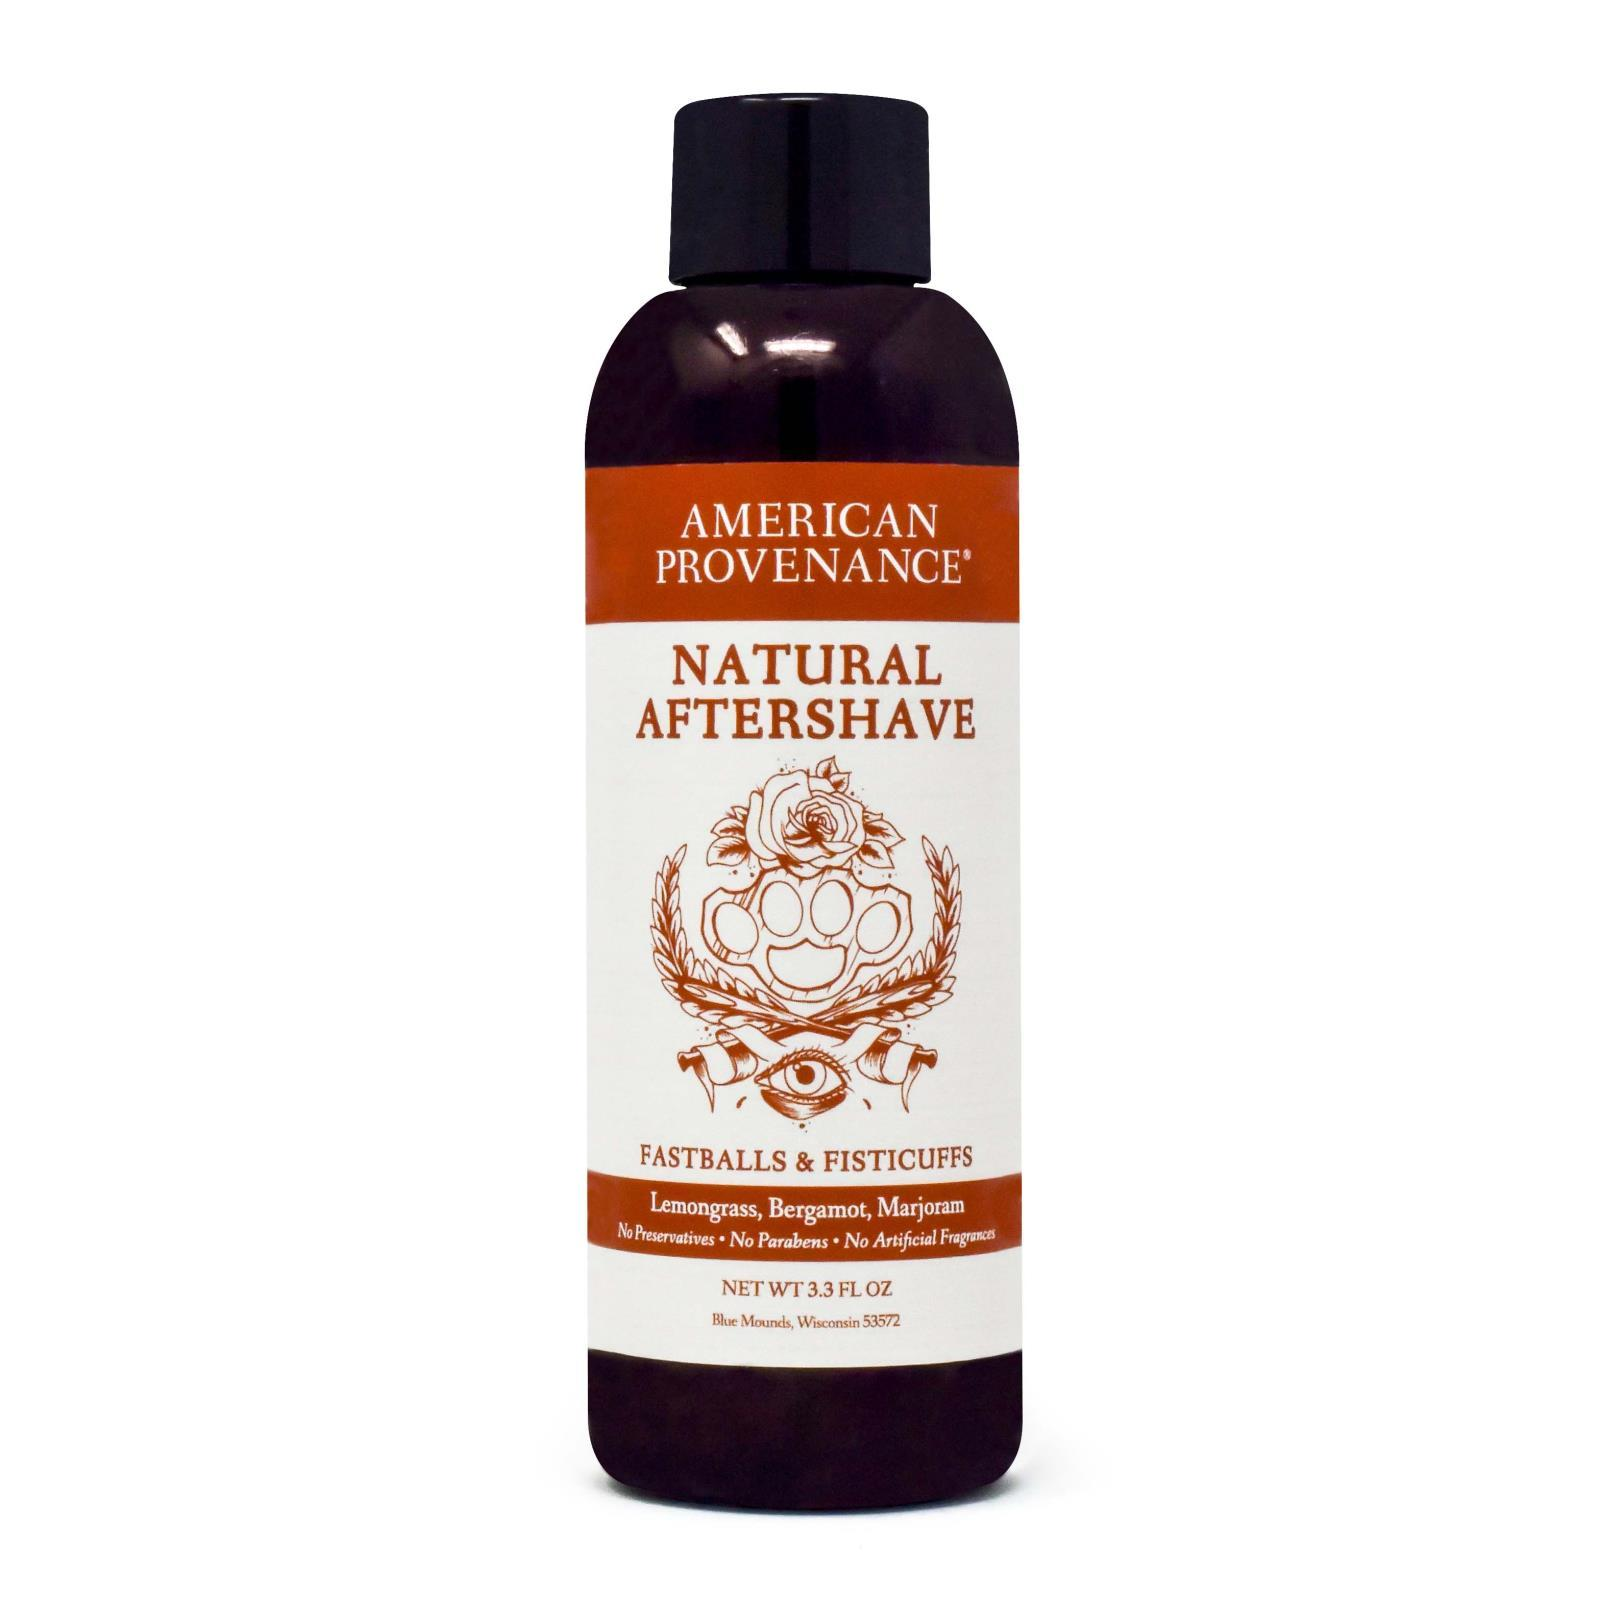 American Provenance - Aftershave - Fastballs And Fistcuffs - 3.3 Fl Oz. - BeeGreen